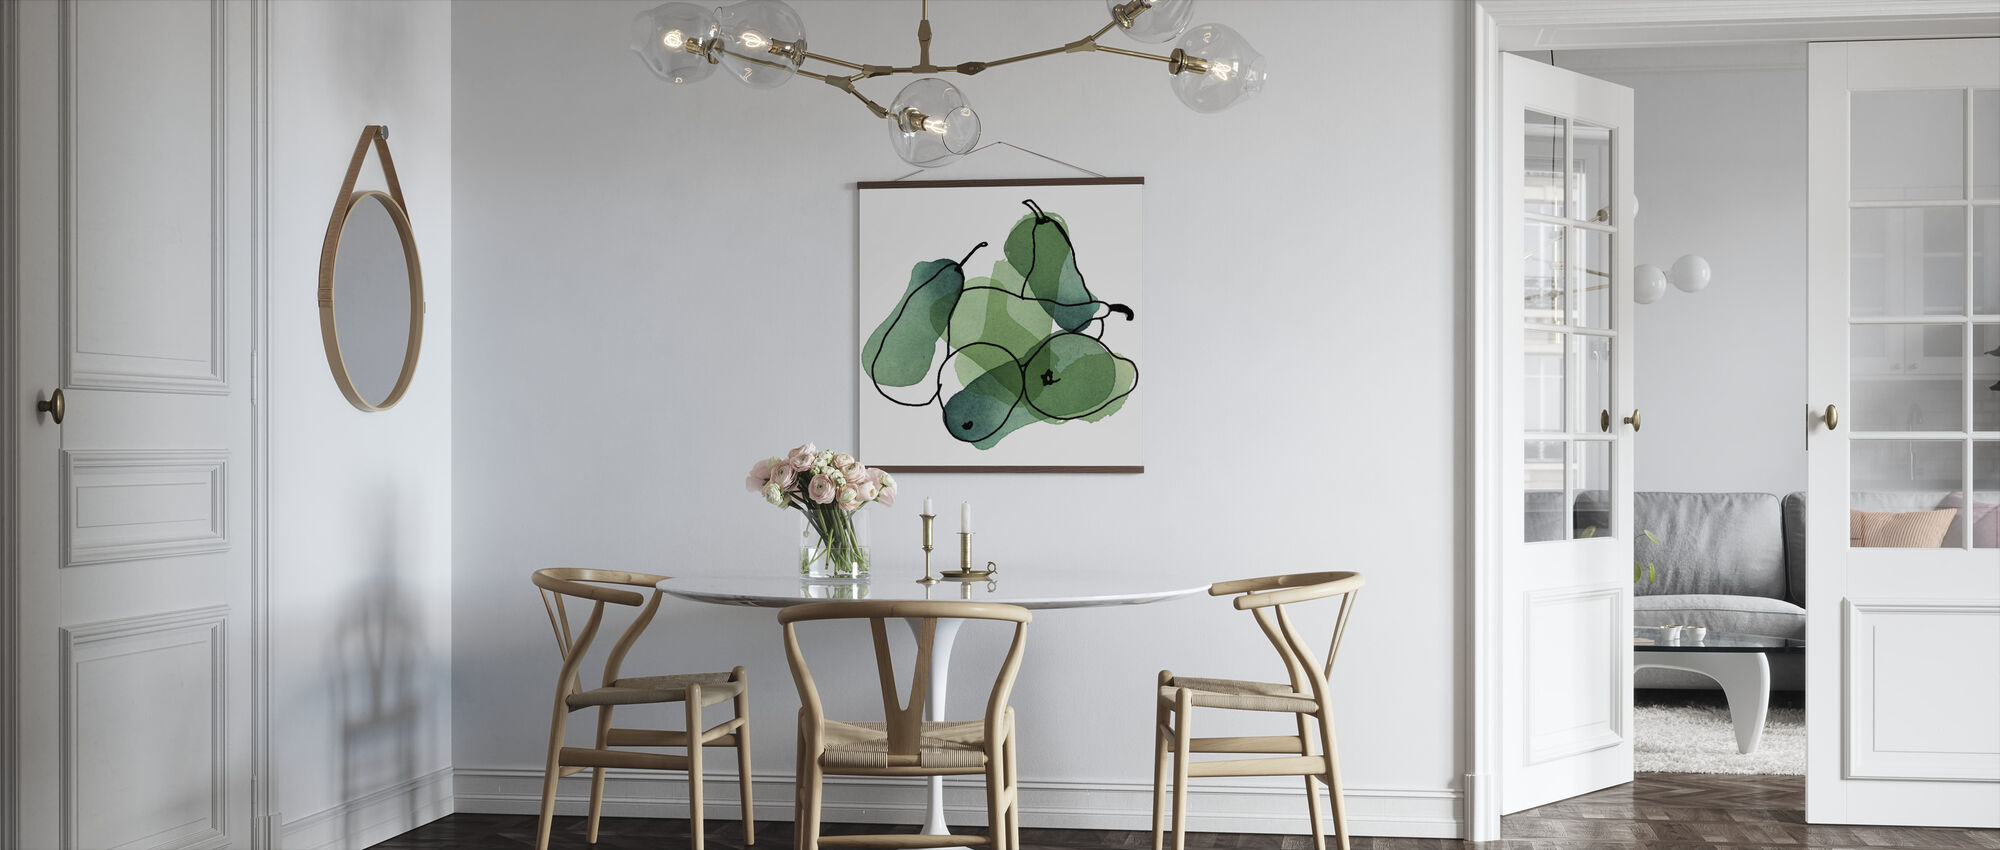 Pears - Poster - Kitchen